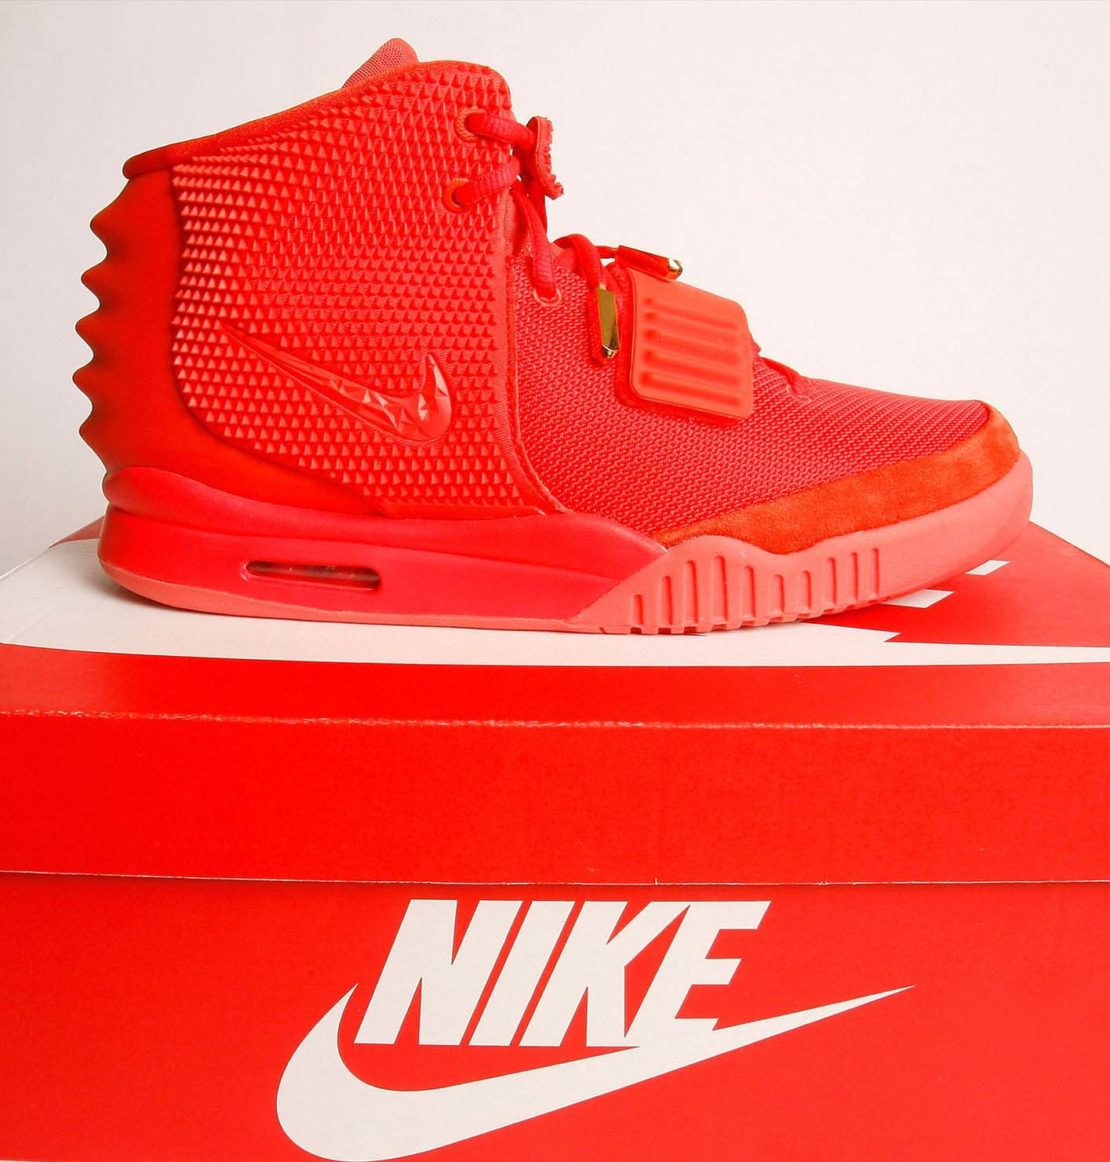 Nike's 'Yeezy' Red October trainer designed with Kanye West